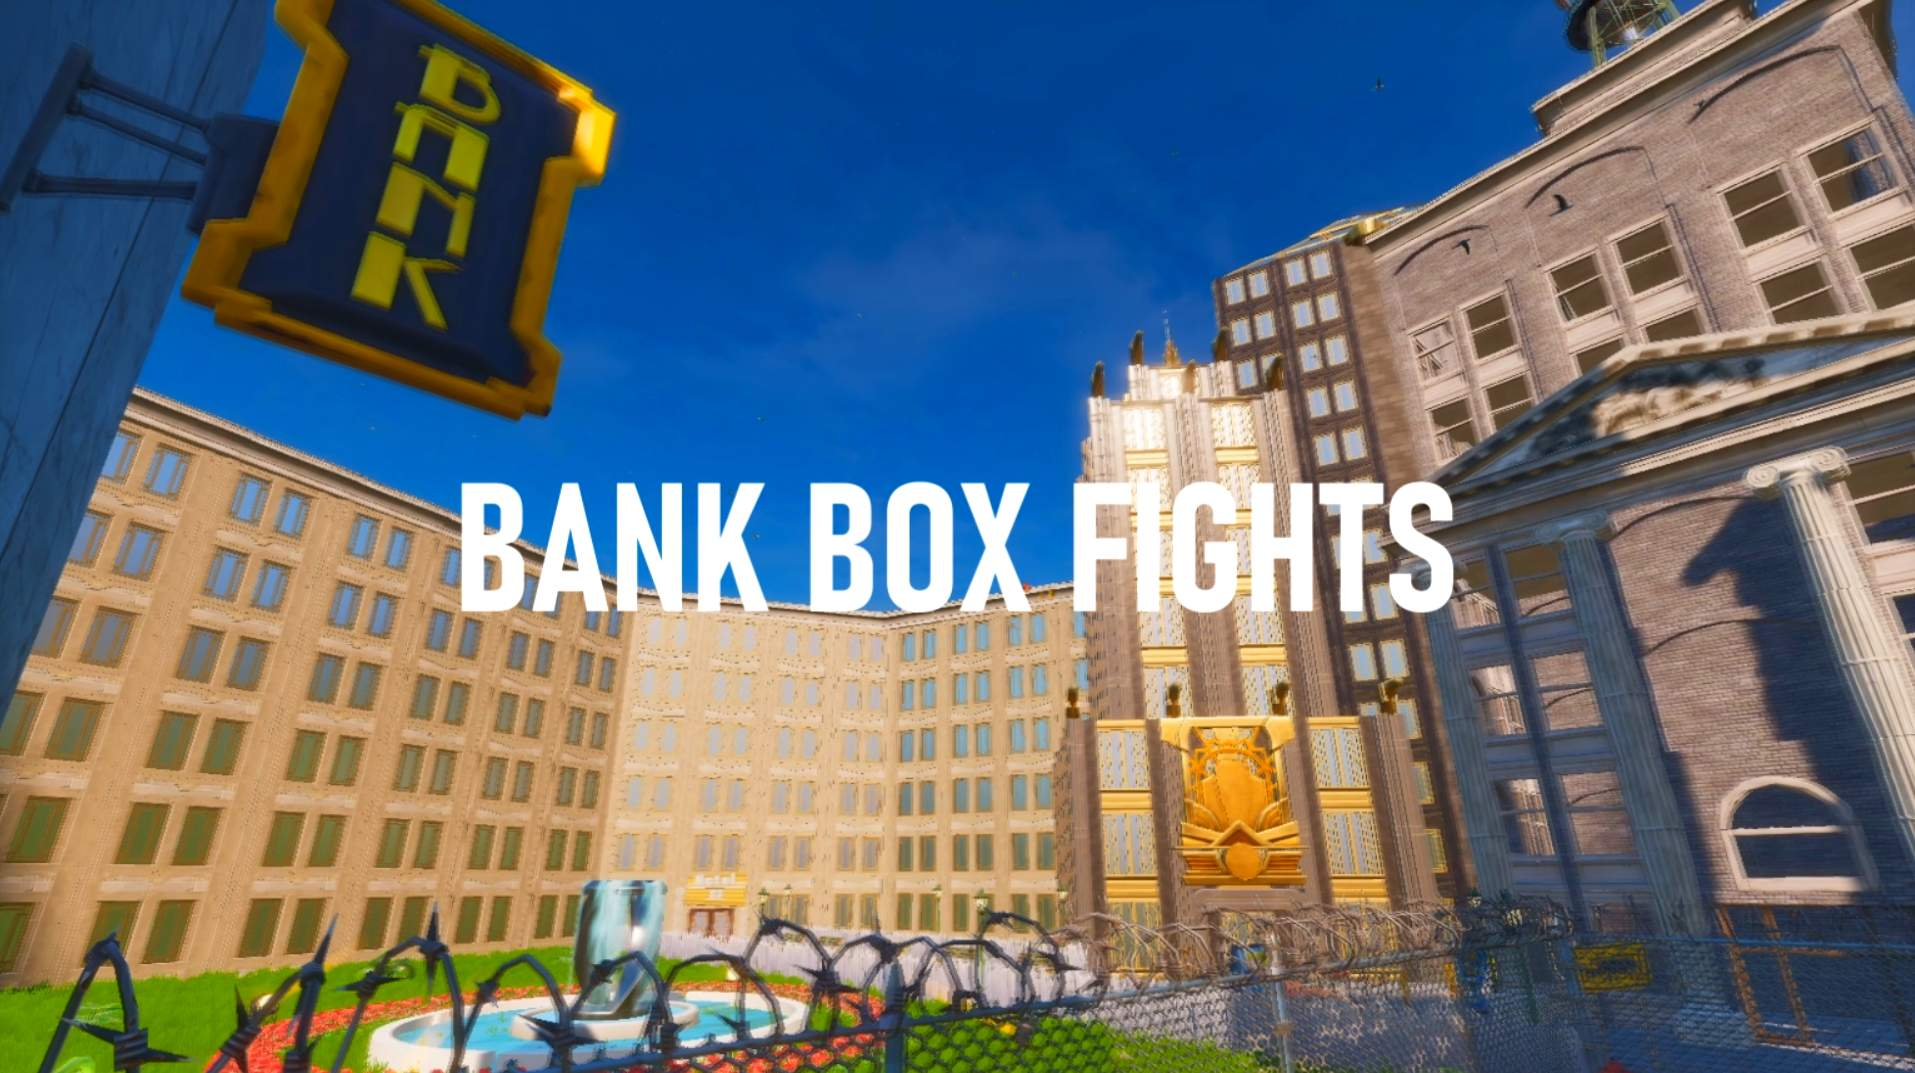 BANK BOX FIGHTS